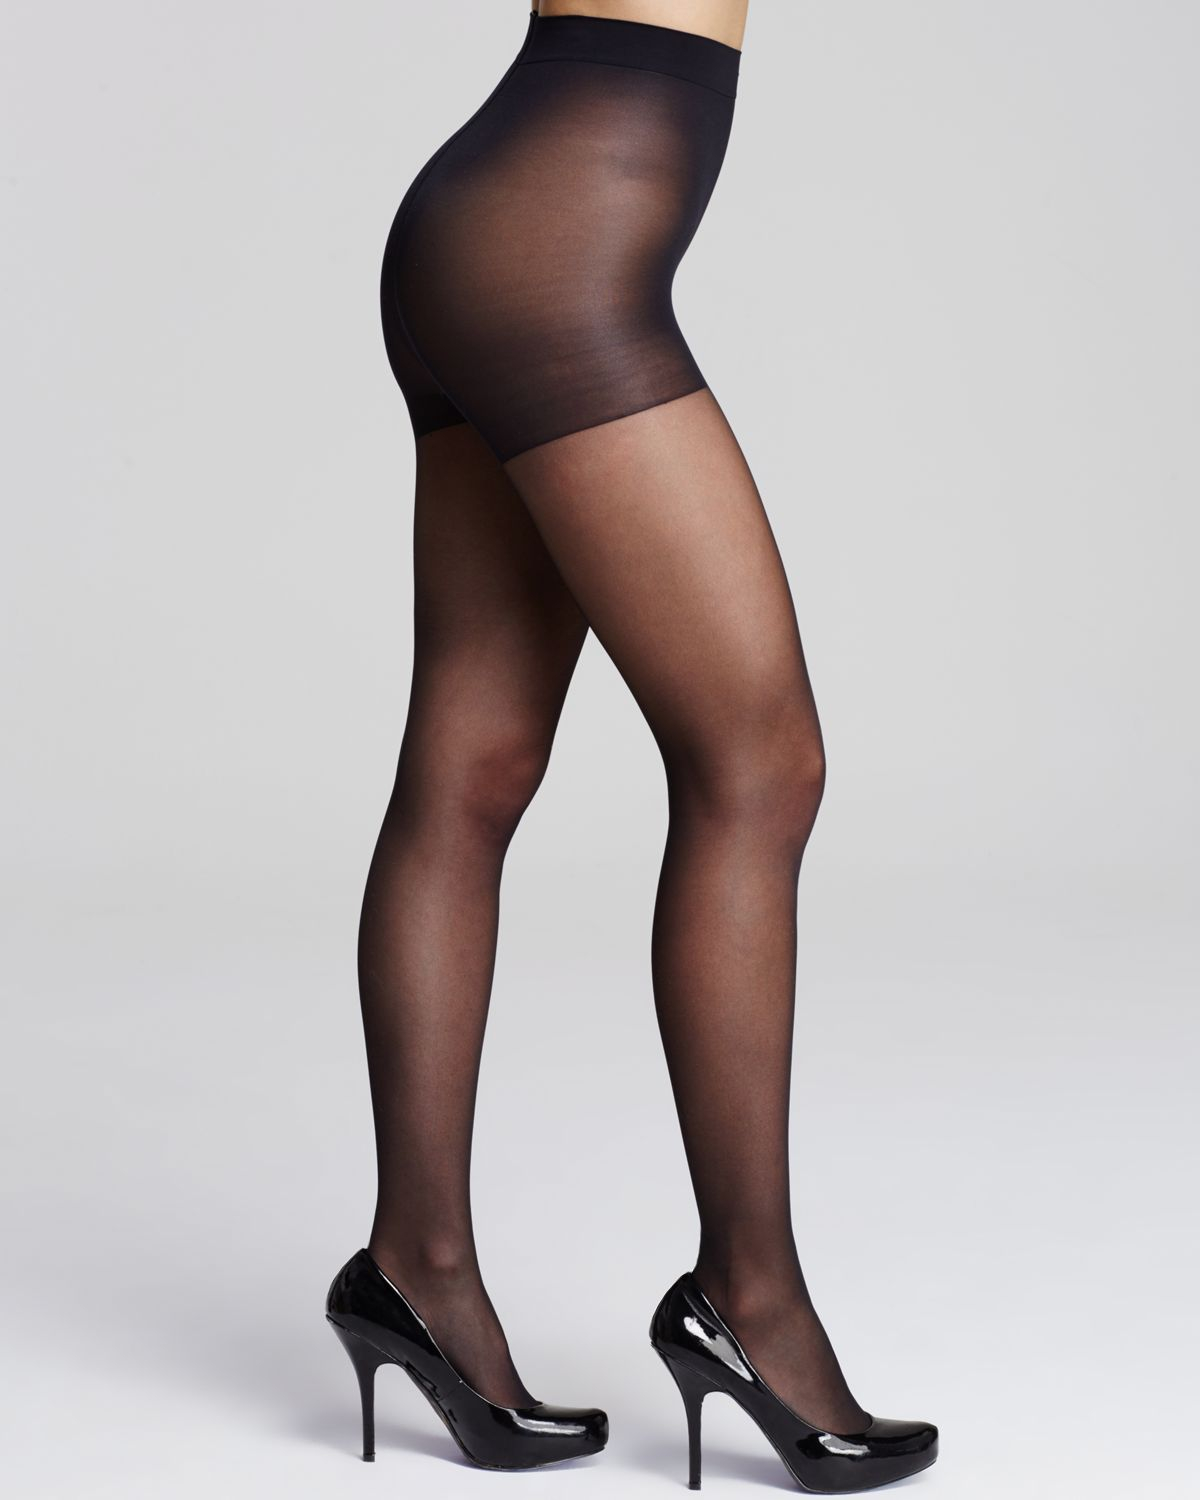 Her expression calvin klein pantyhose the way your